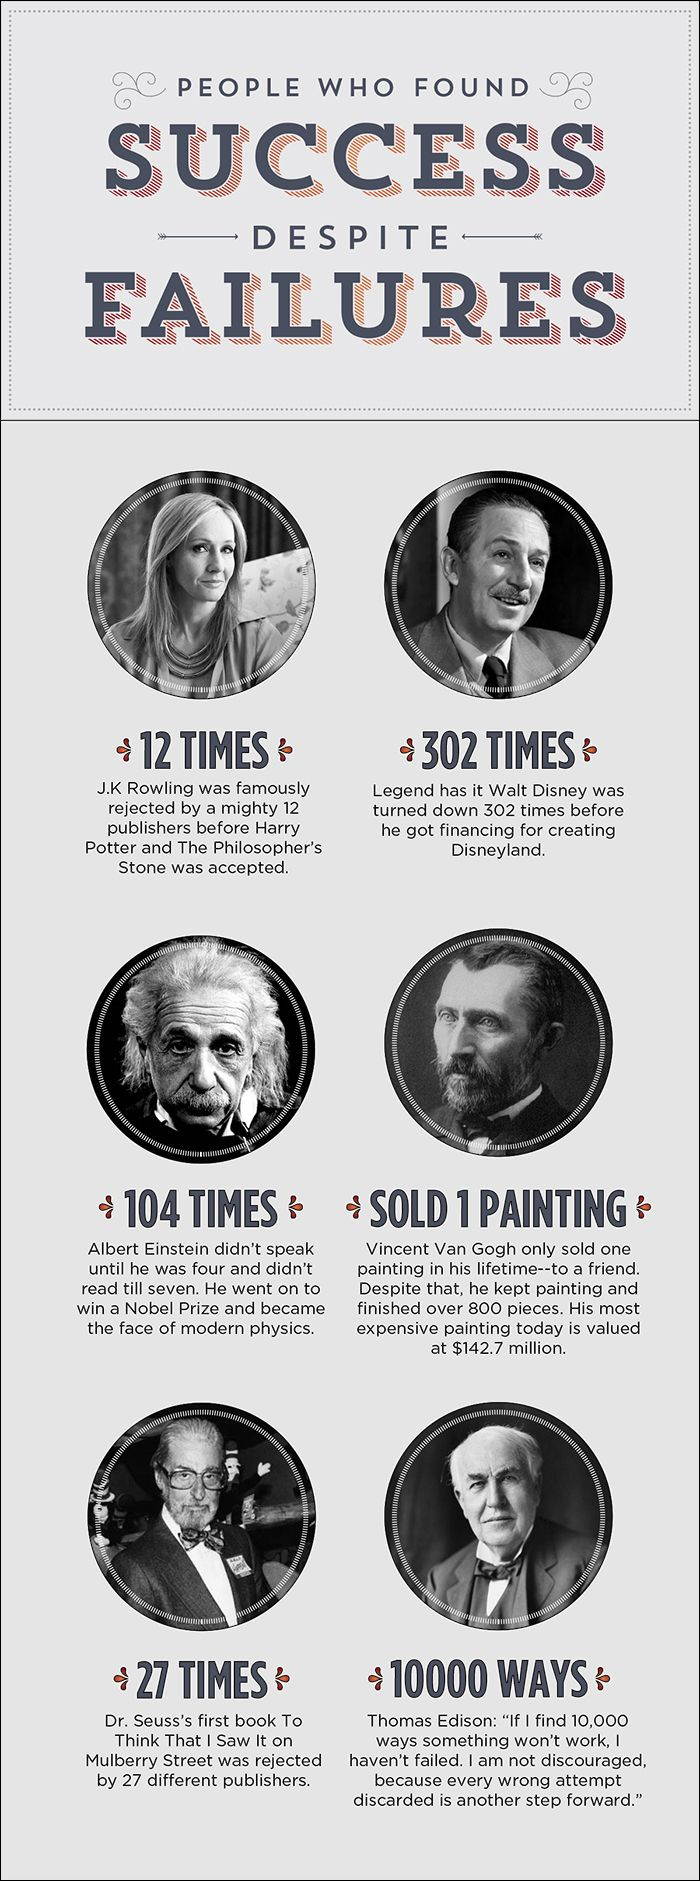 People Who Found Success Despite Failures is a great infographic about success vs. failure.